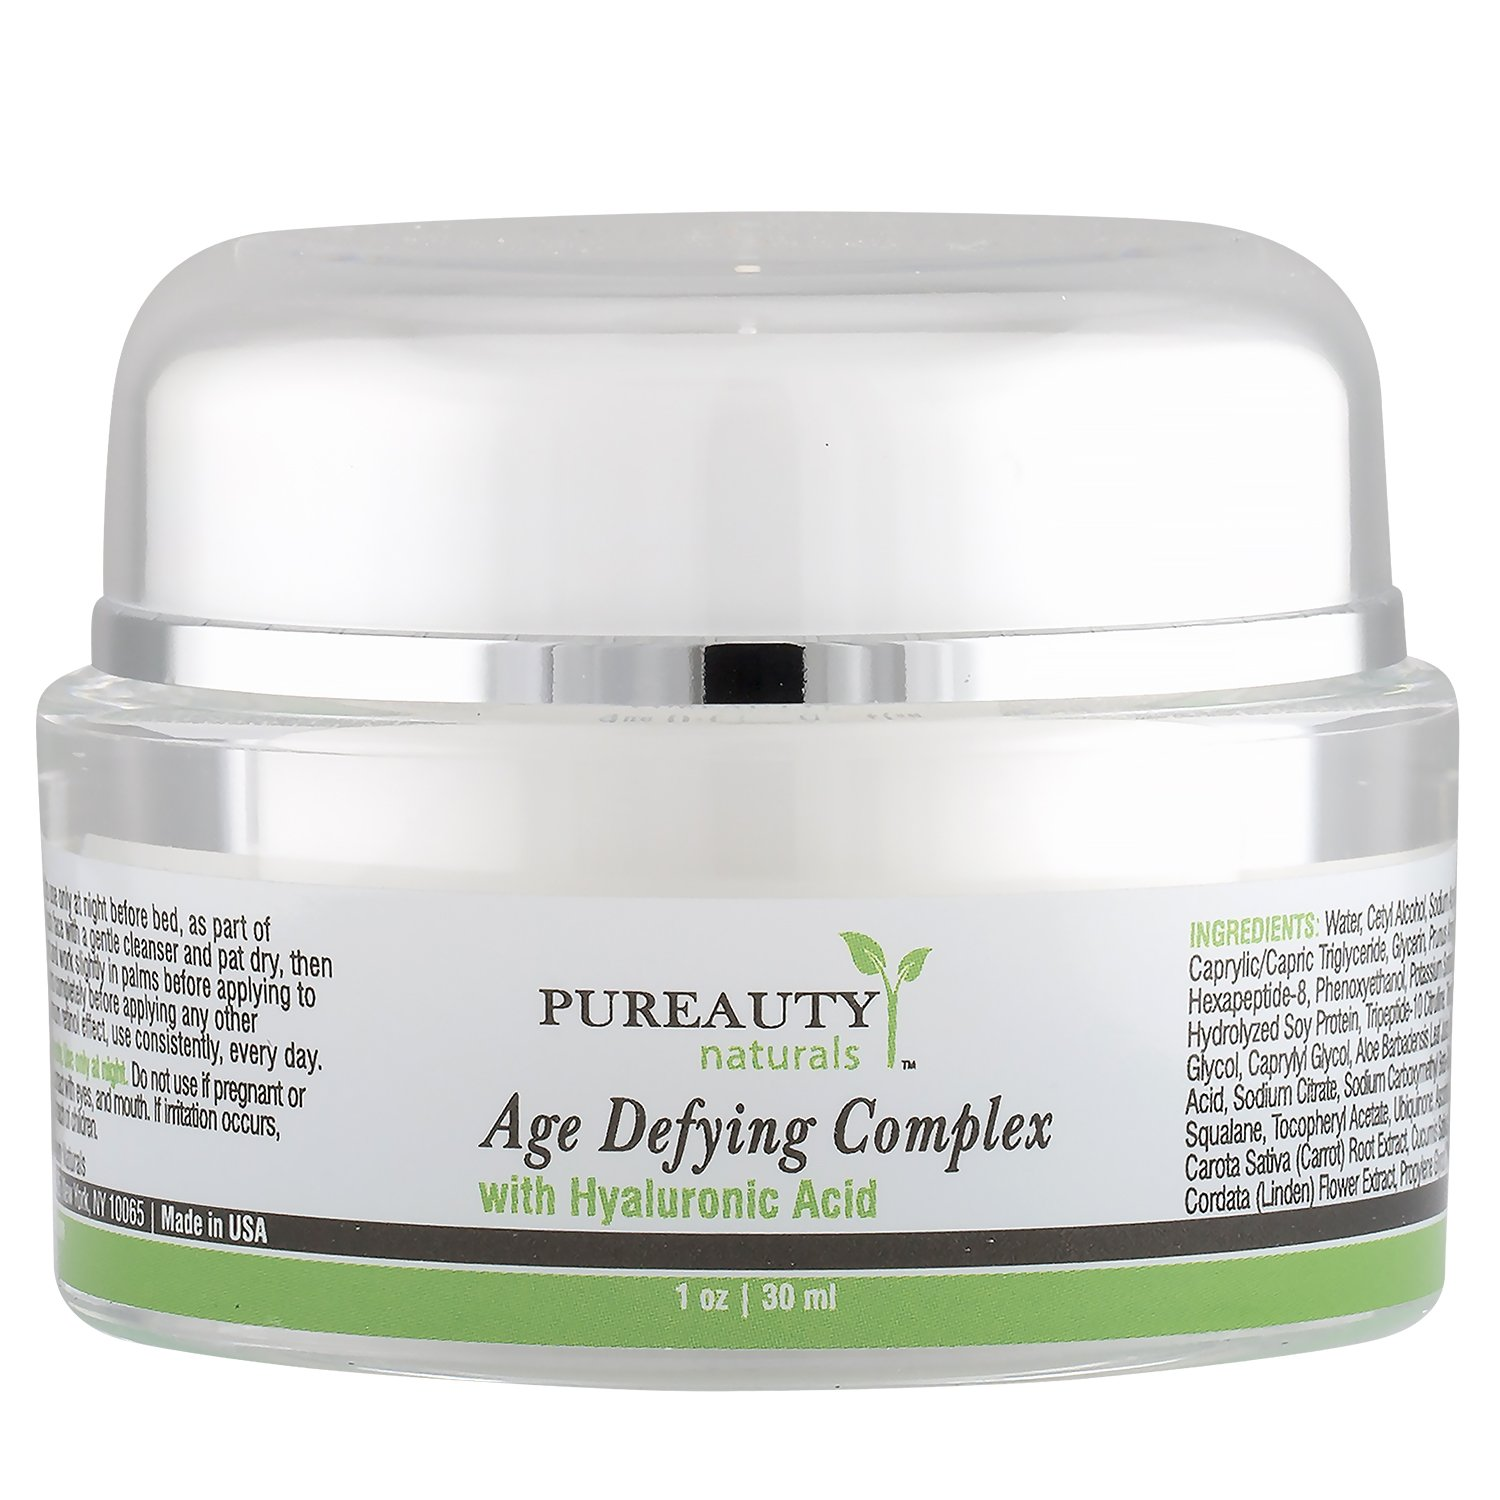 Anti Aging Cream Hyaluronic Acid and Retinol Powered Moisturizer To Help Reduce Wrinkles, Tighten and Hydrate Your Skin for Face and Neck by Pureauty Naturals